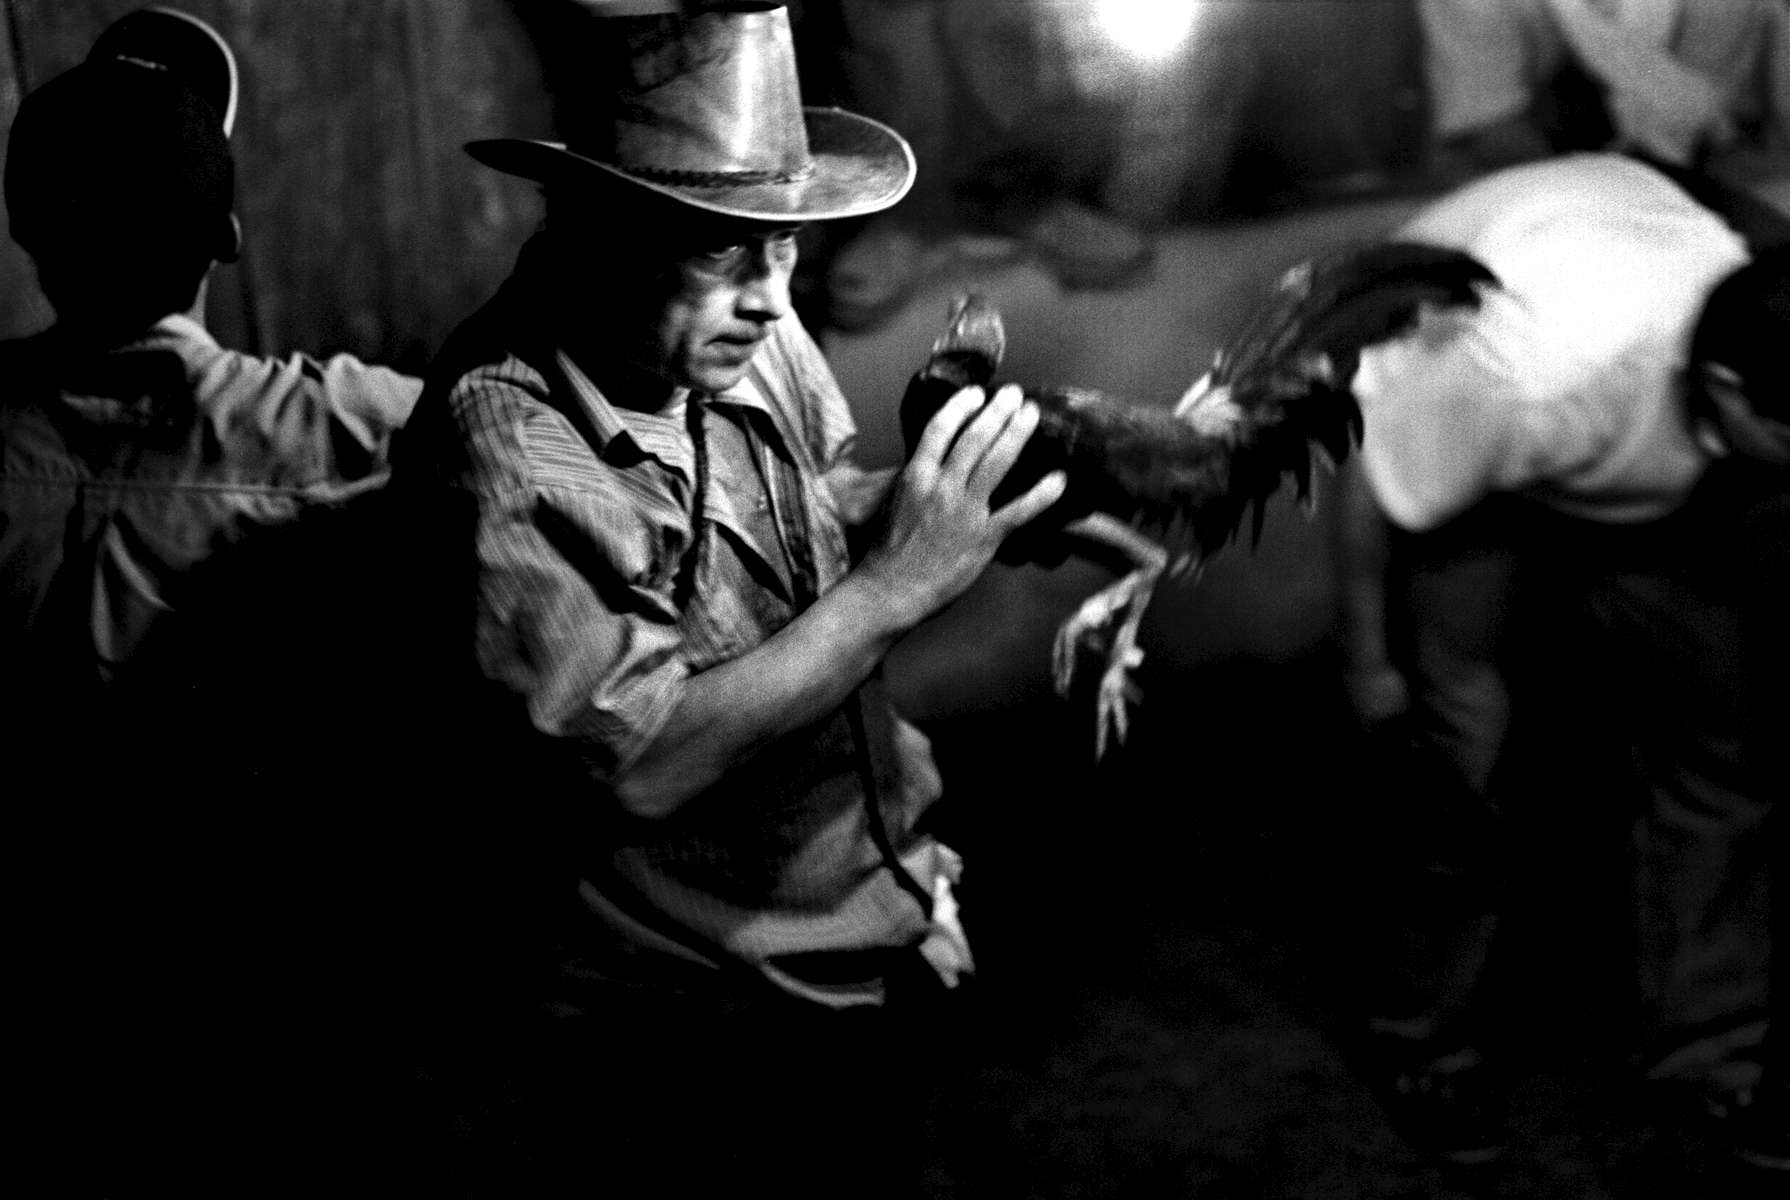 Cock fighter and his prized possession, Rio Caguan town, Southern Colombia 2001